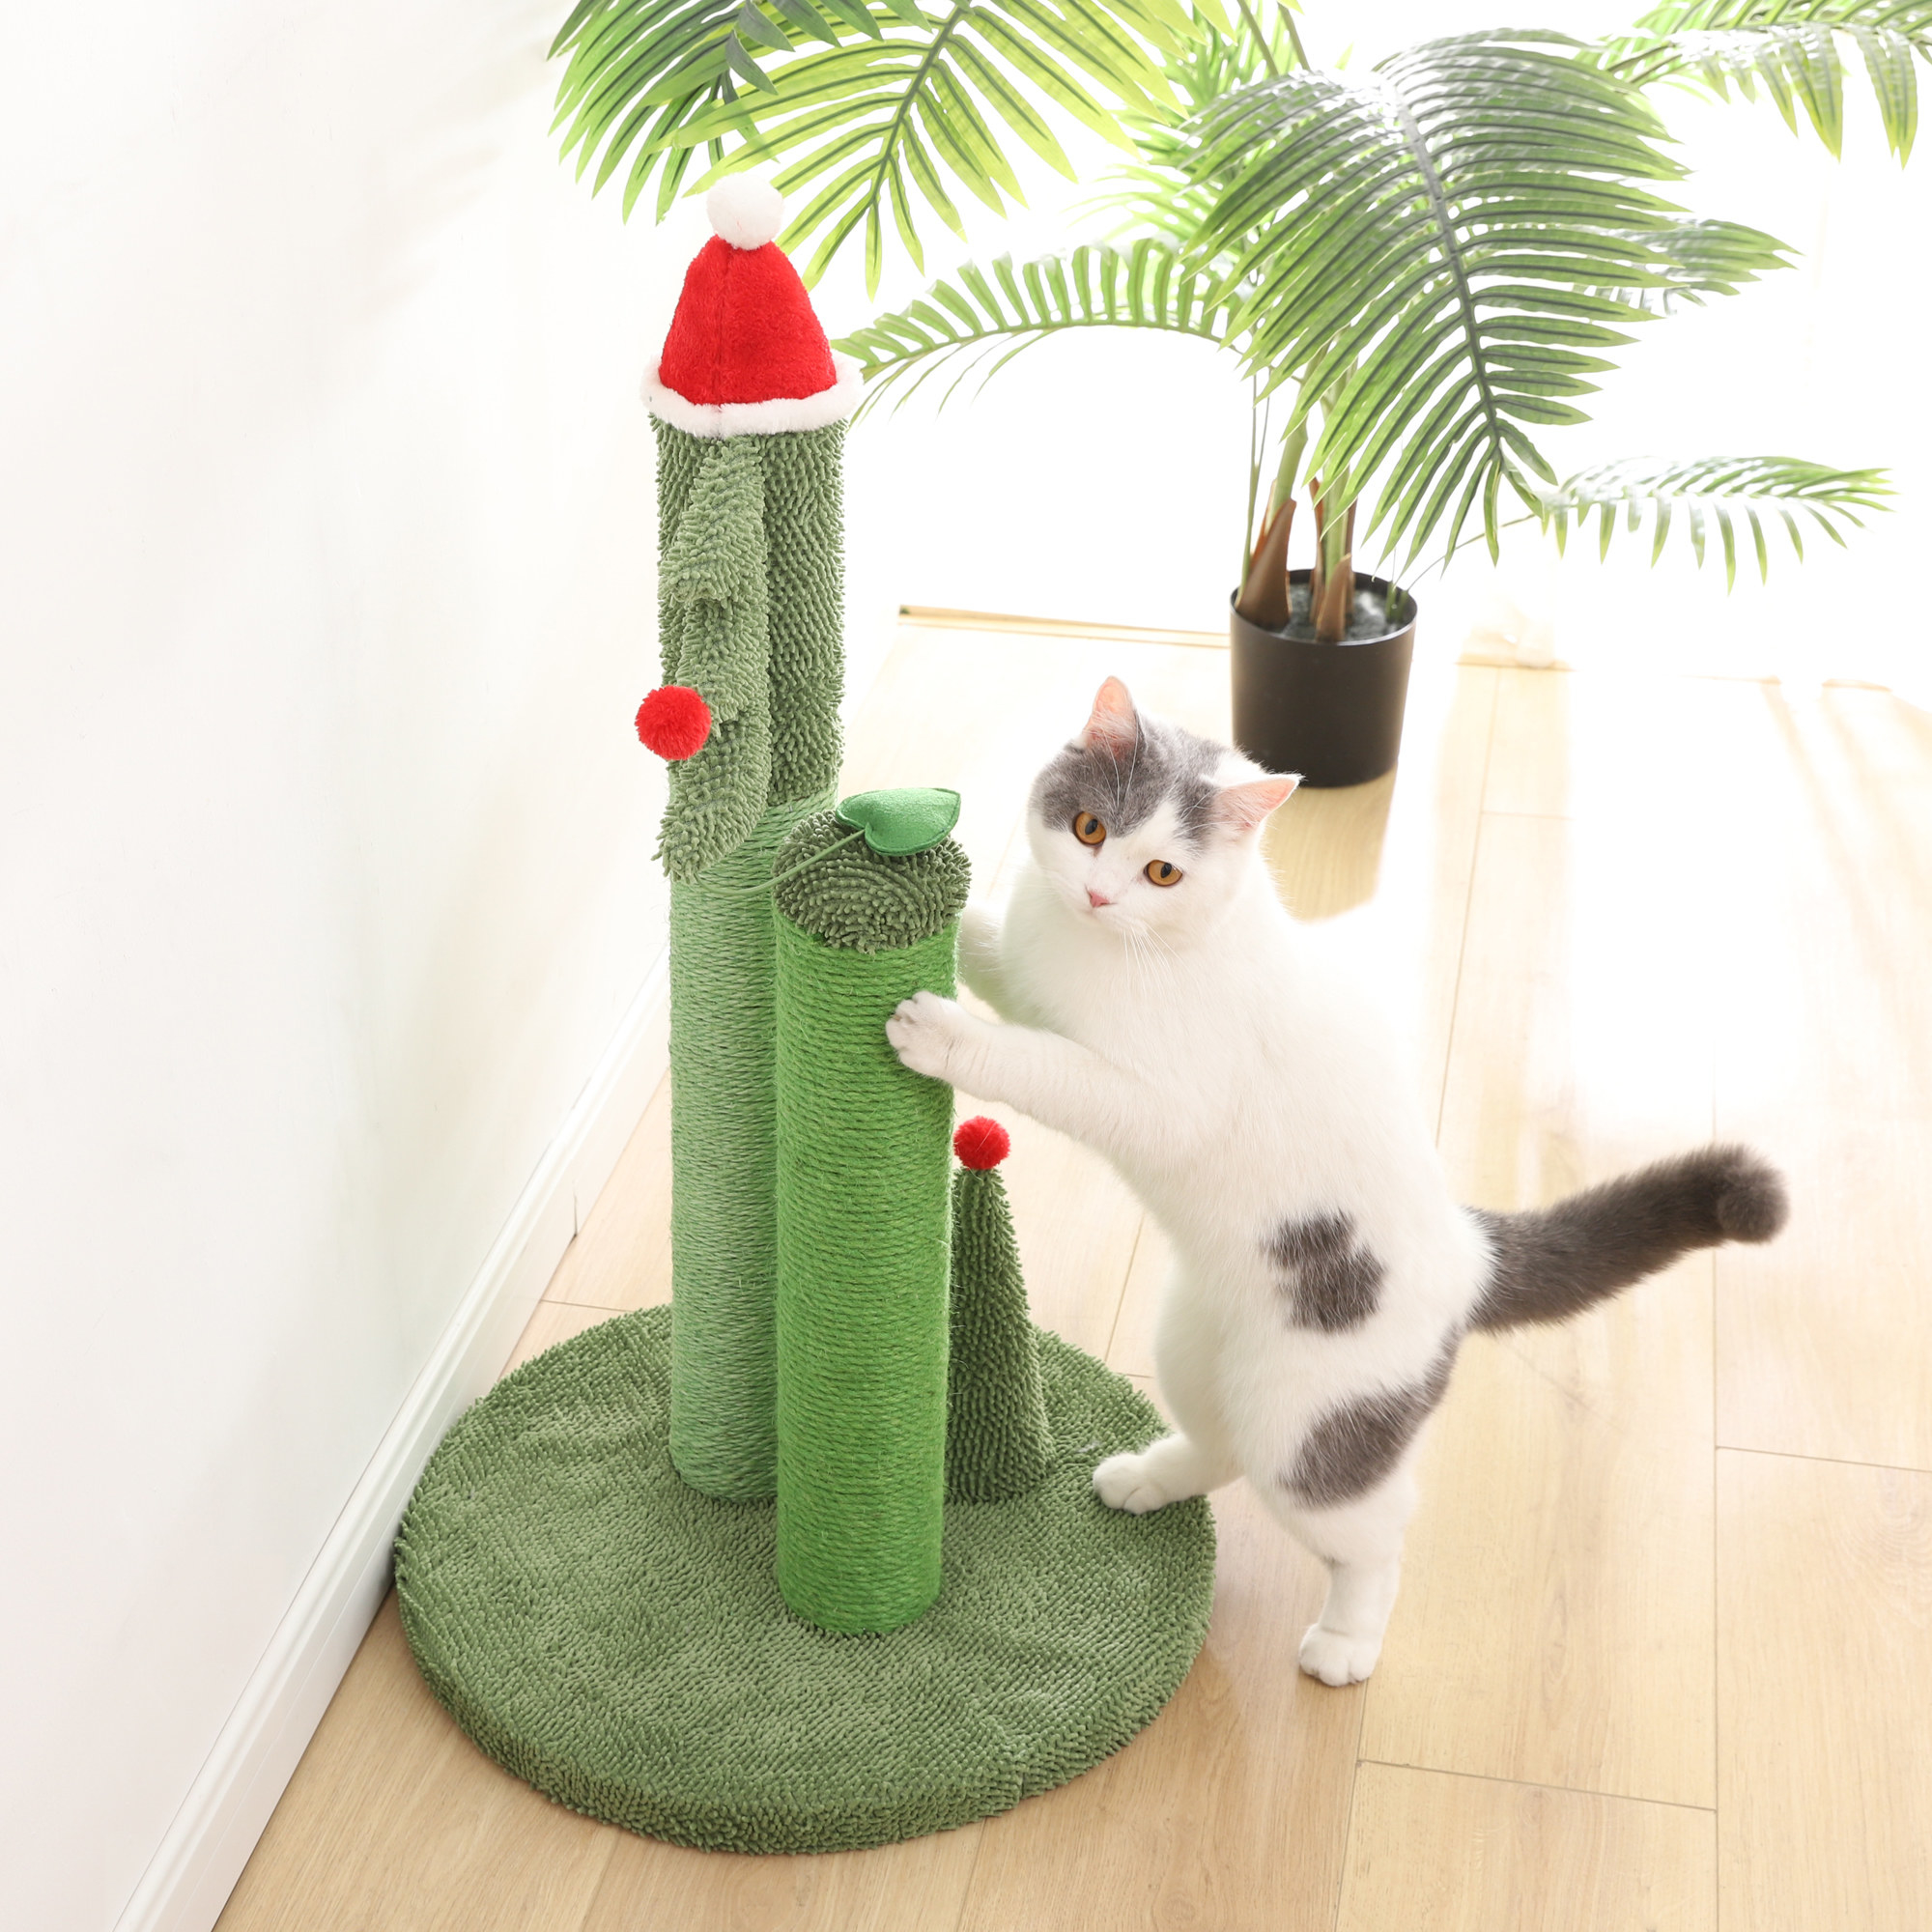 A cat playing with the green cat tree